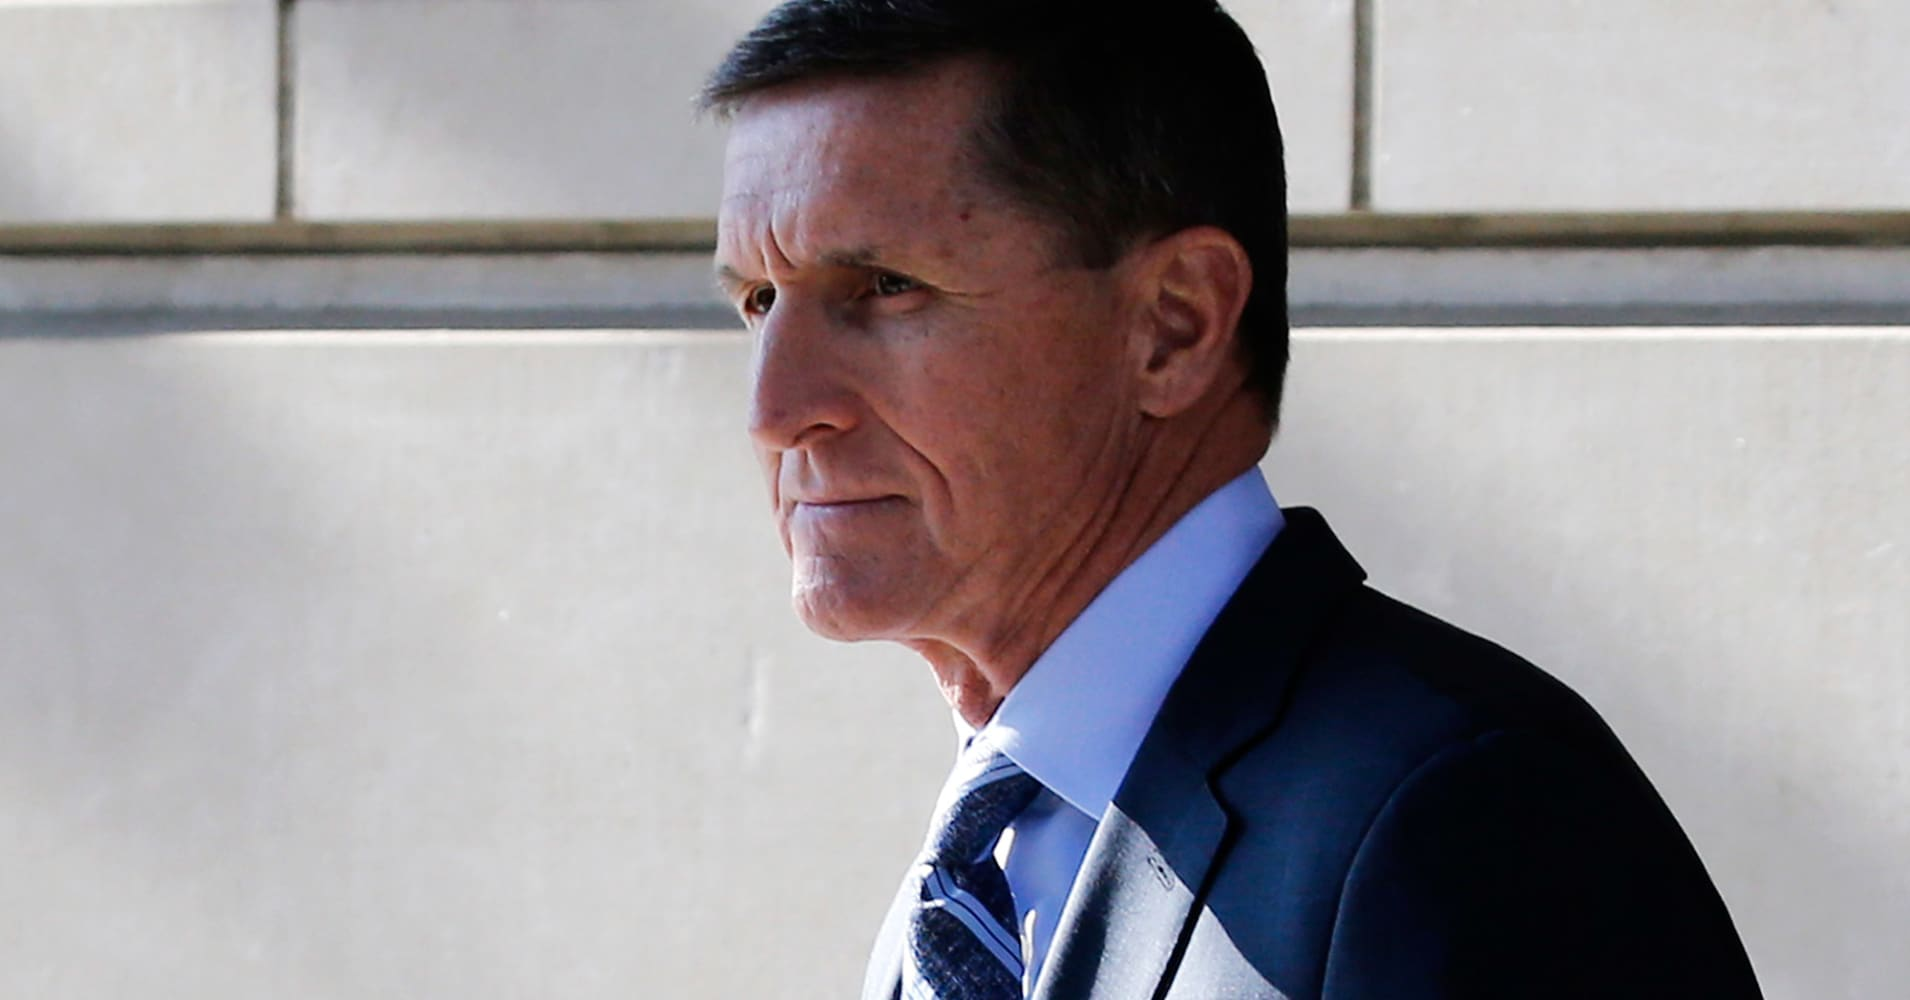 Special counsel Mueller calls for light sentence for ex-Trump national security advisor Michael Flynn